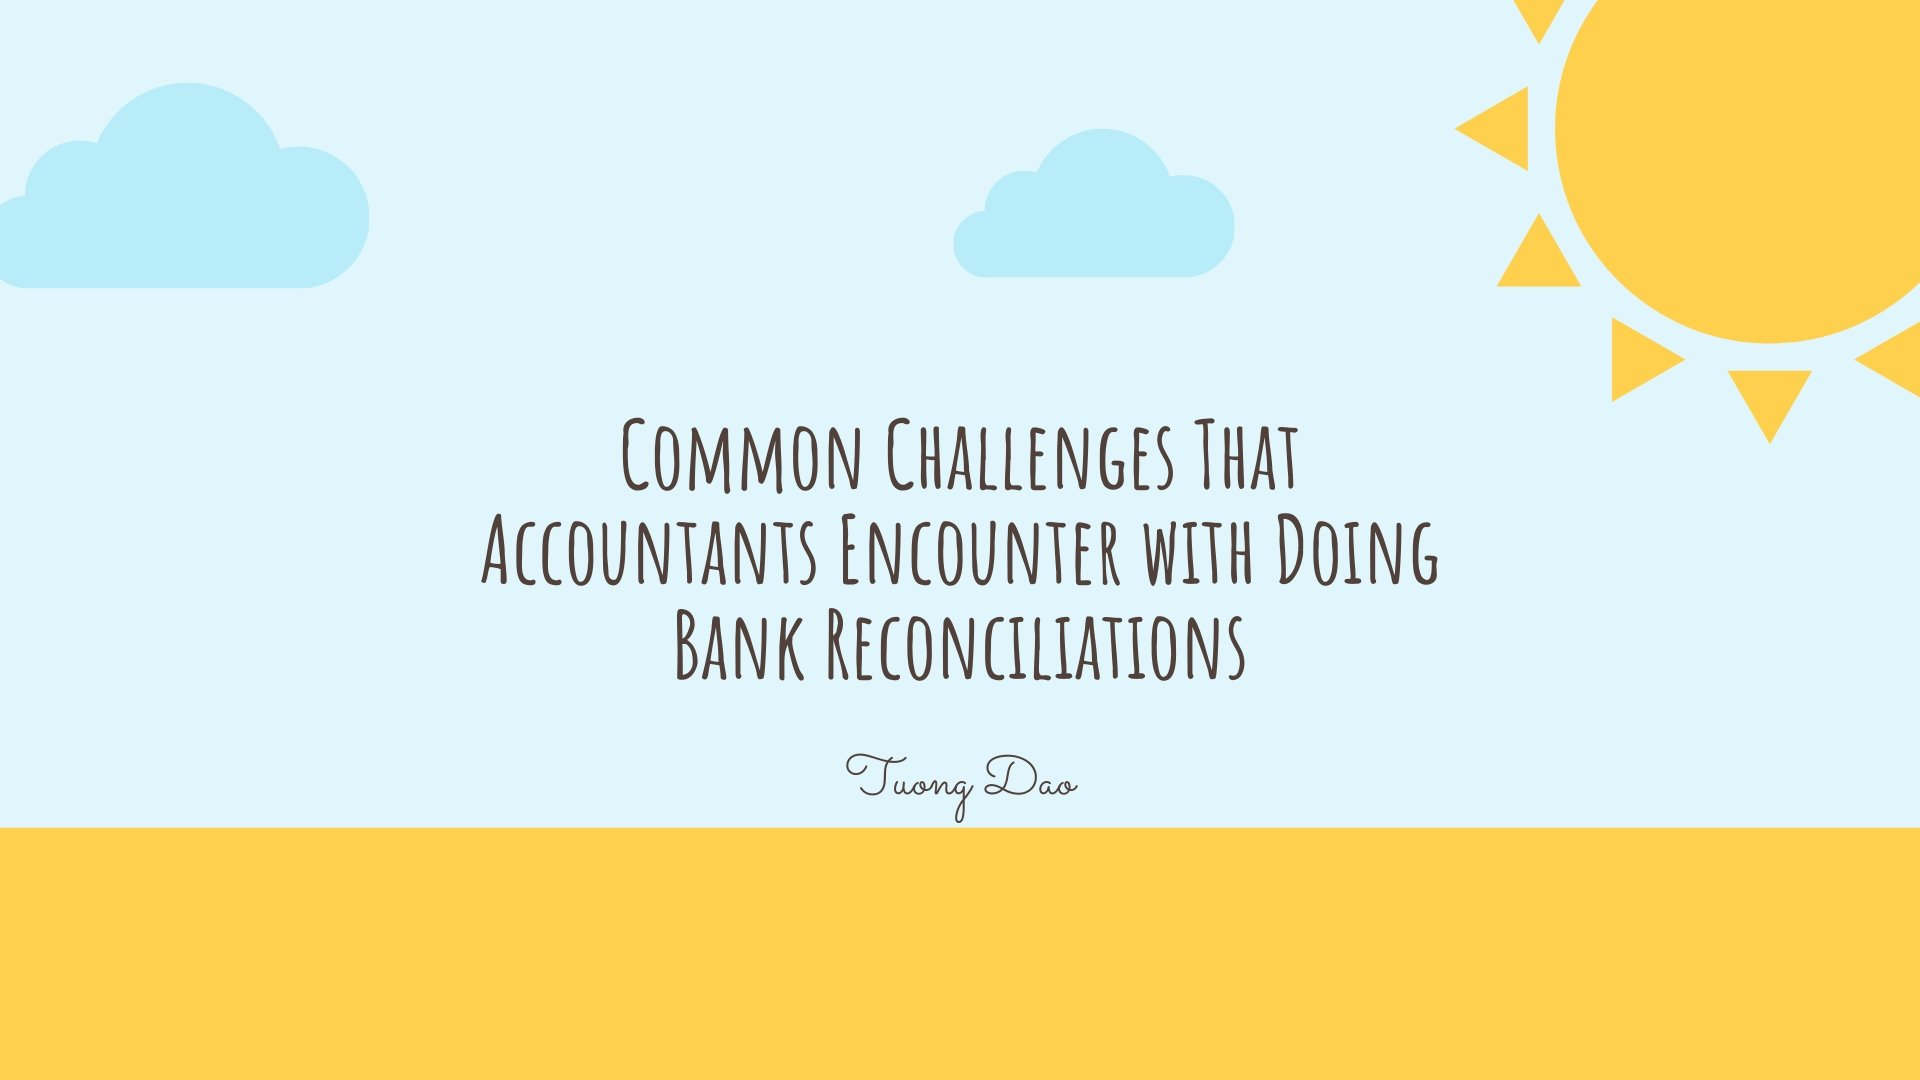 Common Challenges That Accountants Encounter with Doing Bank Reconciliations